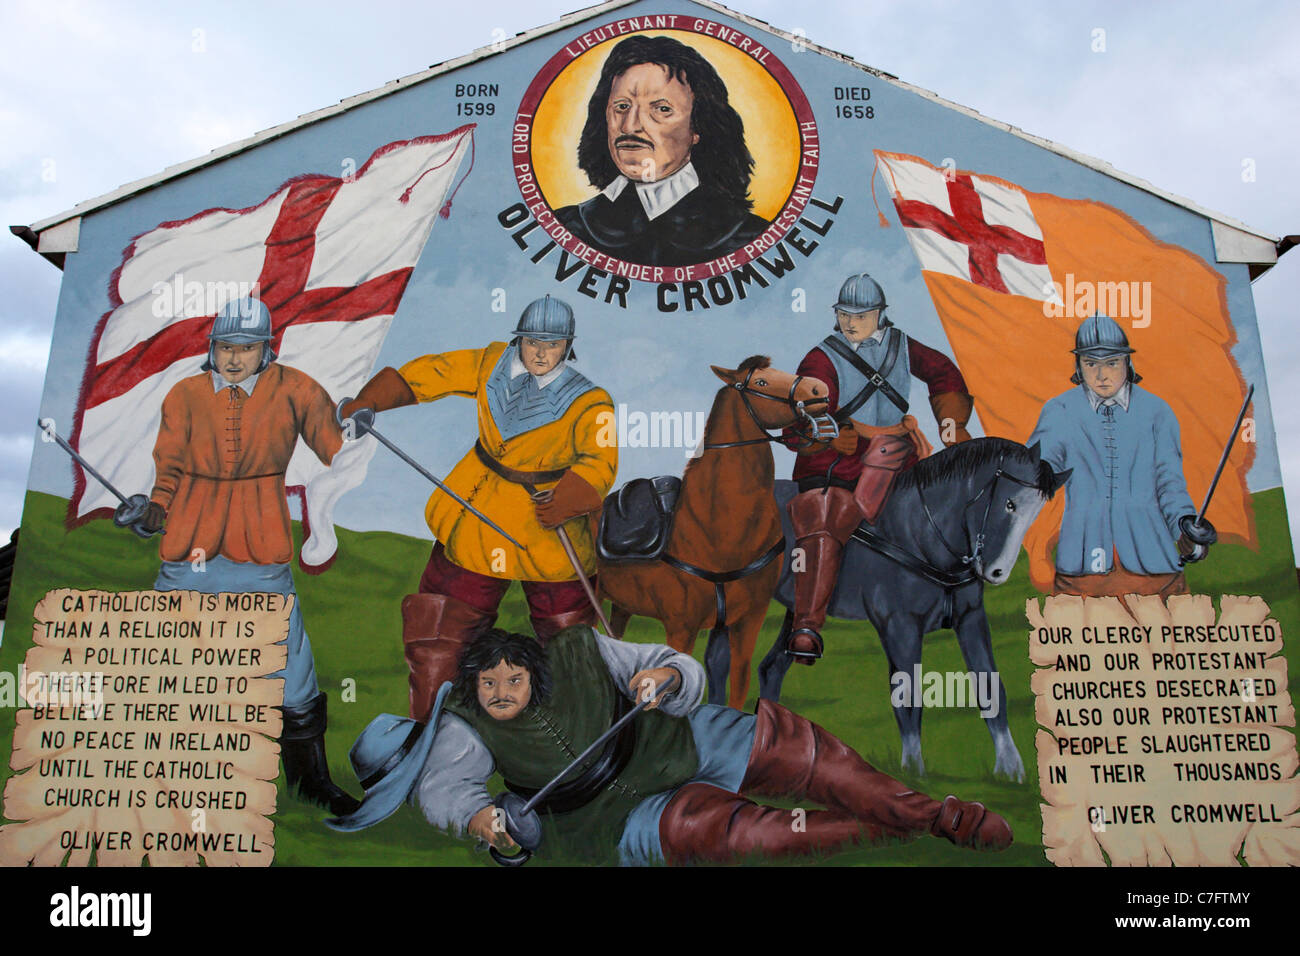 oliver cromwell protestant loyalist wall mural painting west belfast